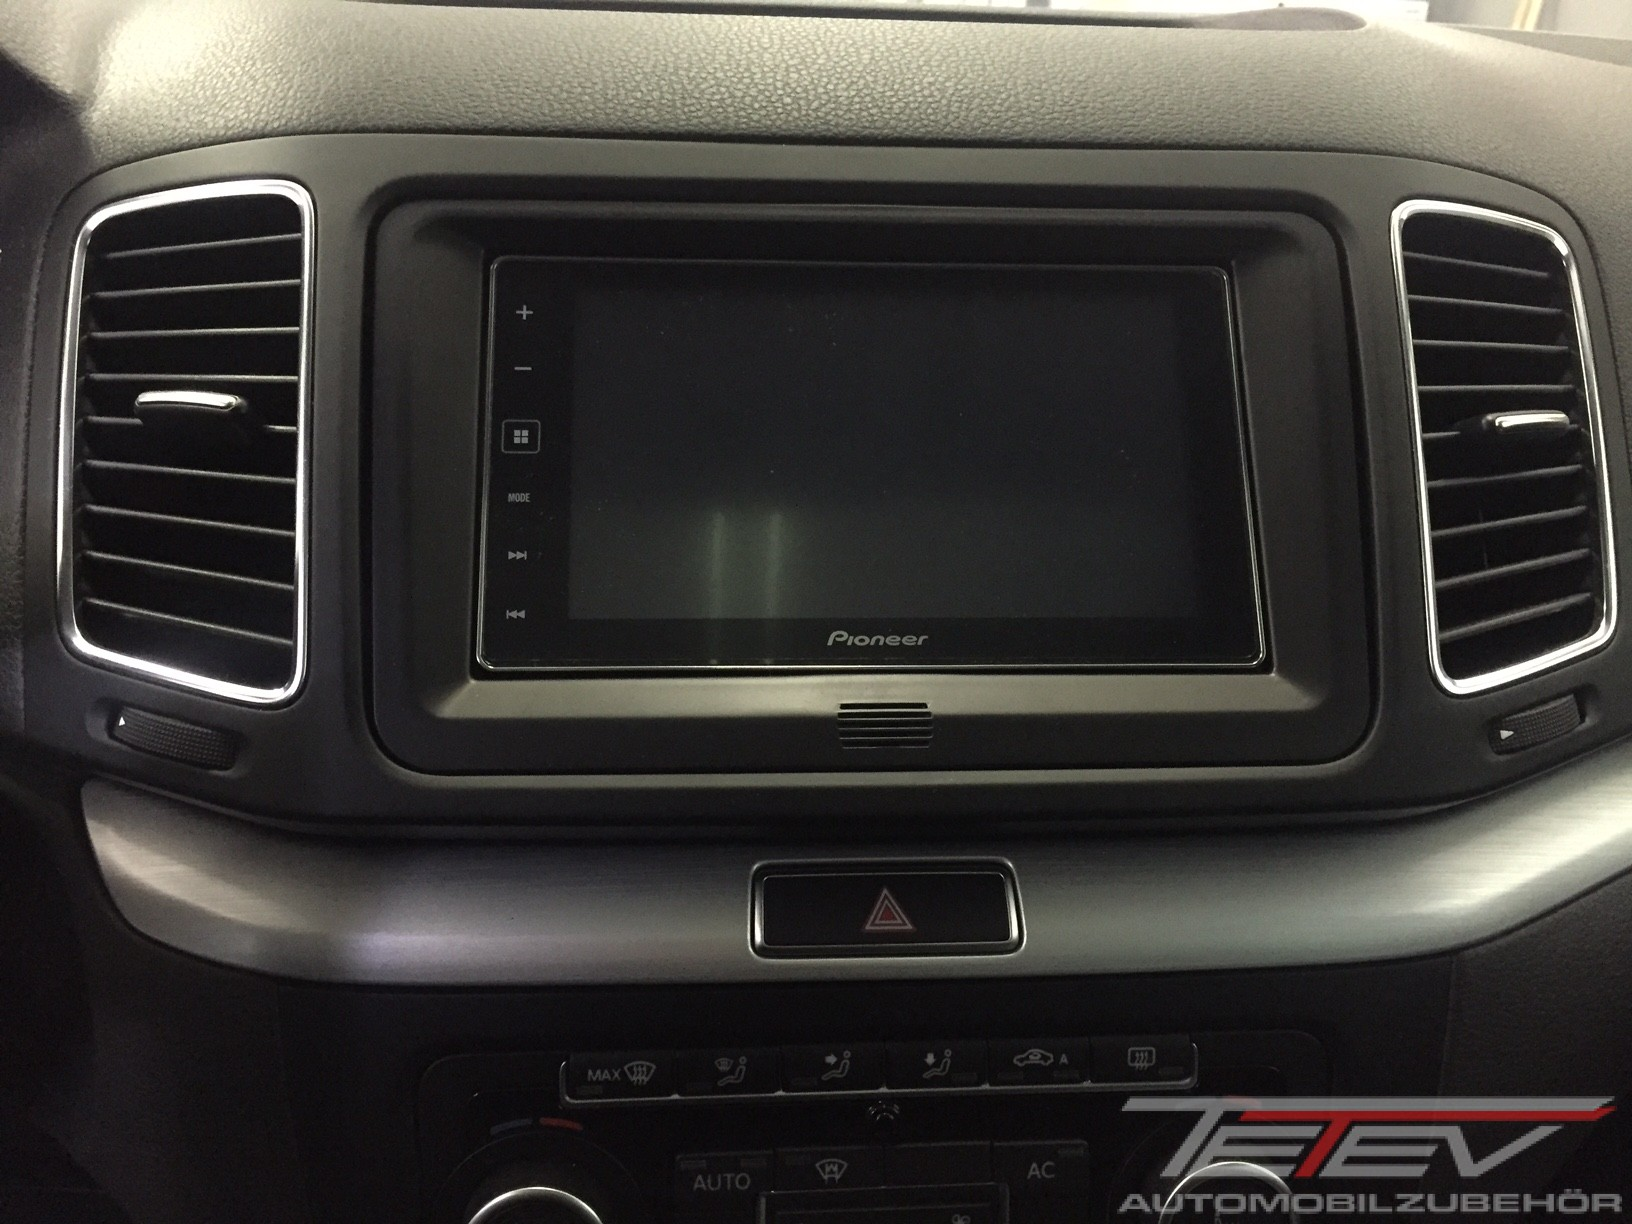 Pioneer AppRadio im VW Sharan